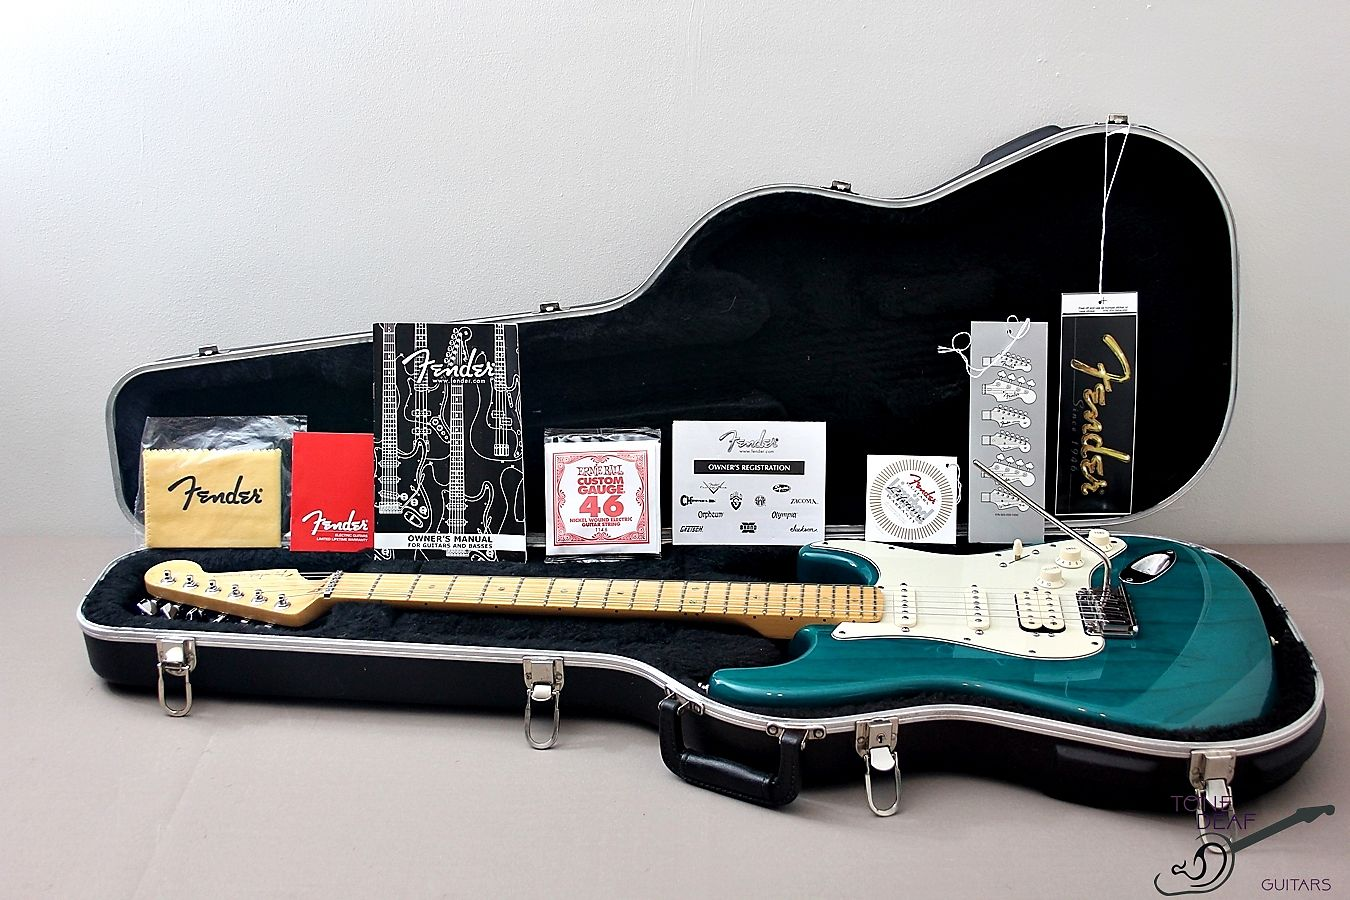 Fender American Deluxe Stratocaster Teal Blue 2000 Reverb Ibanez At10p Wiring Diagram